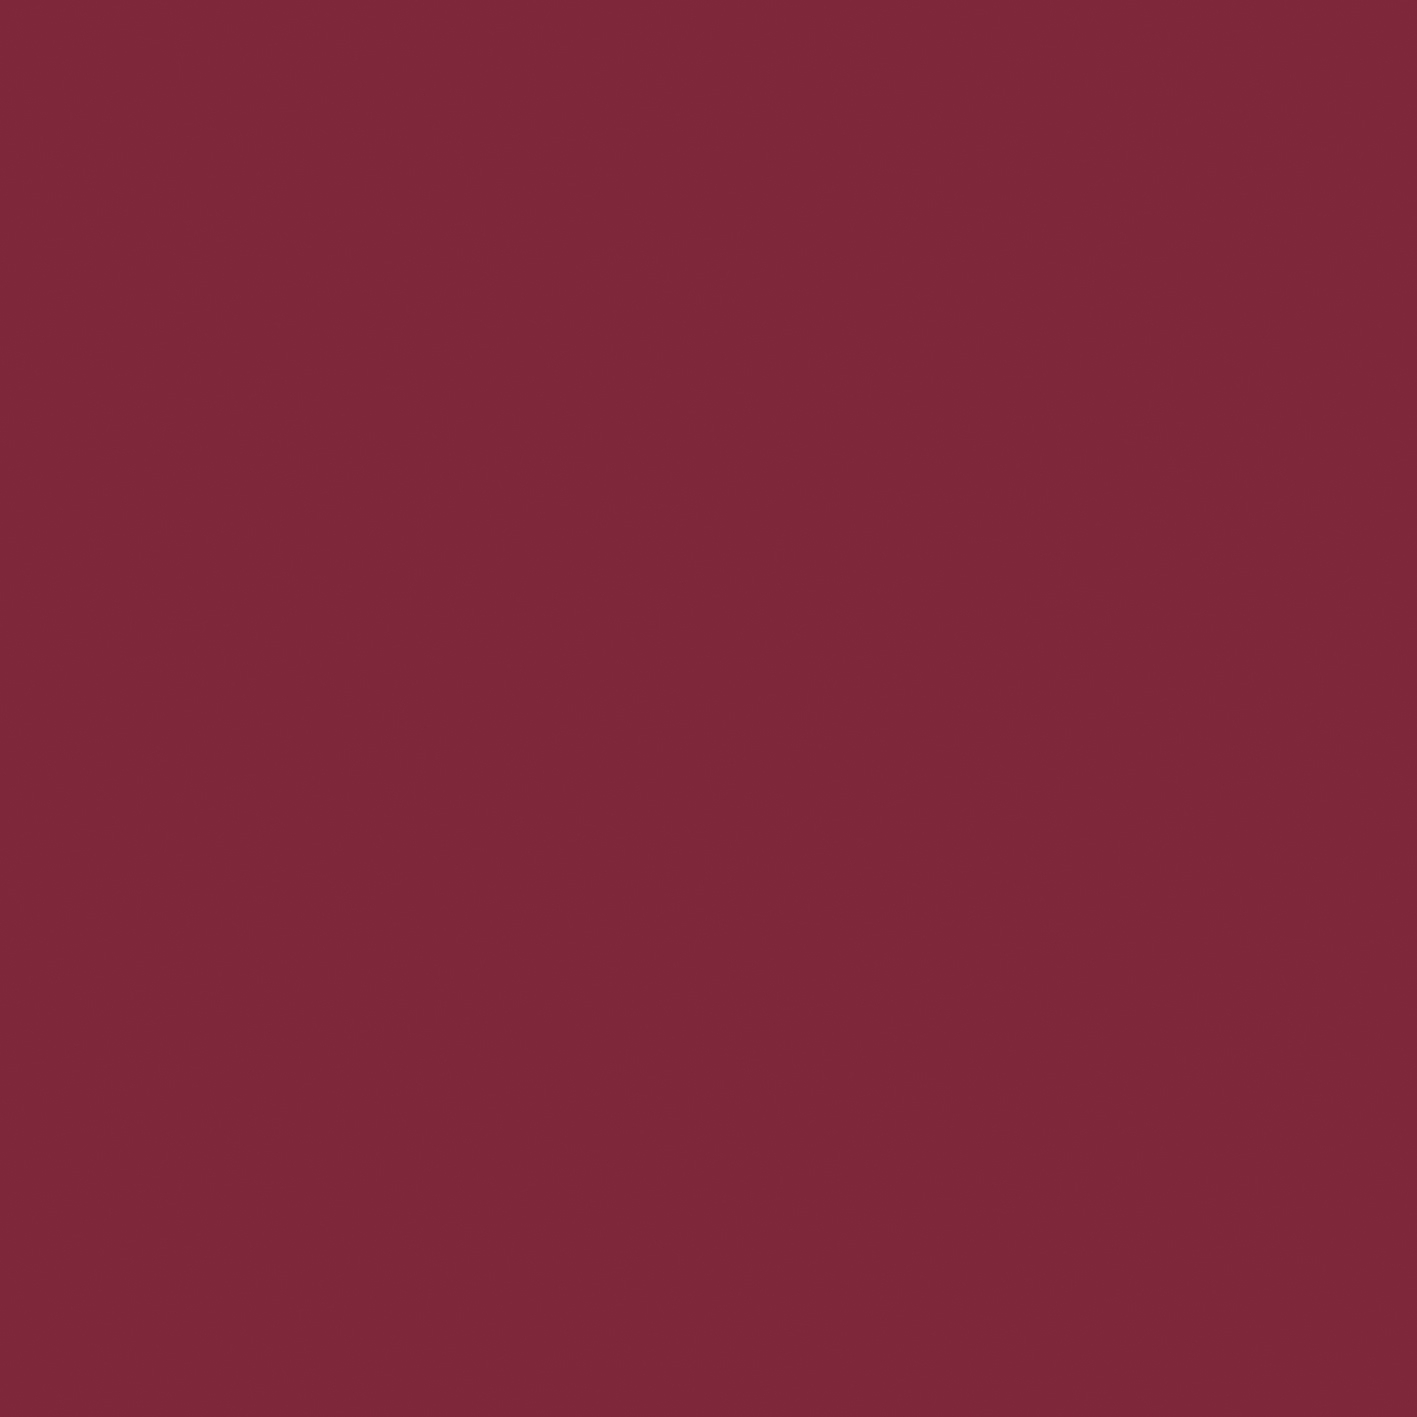 Buildtech 2.0 Bold Colors Burgundy Matte 6mm 160 x 160